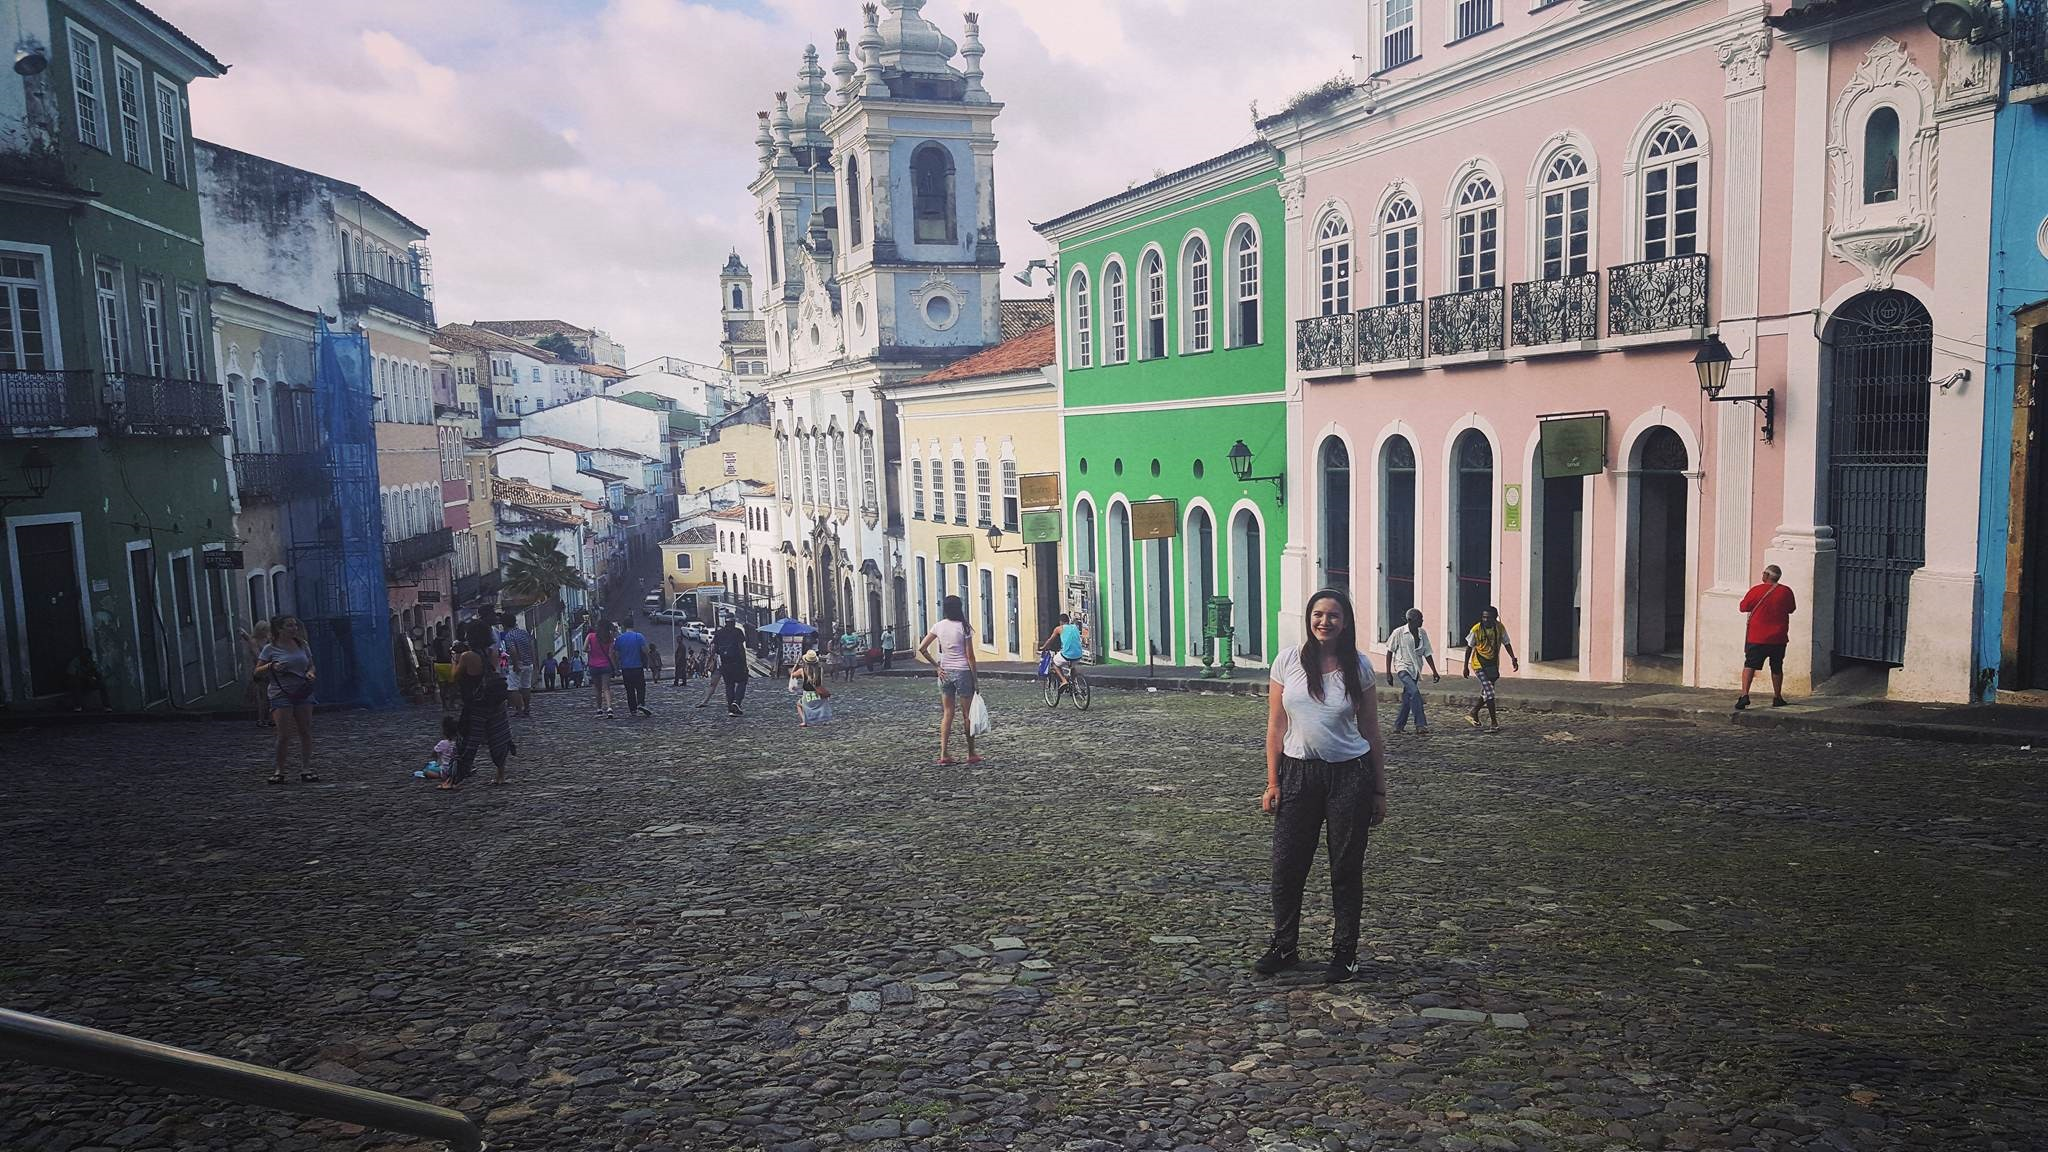 Salvador historic centre